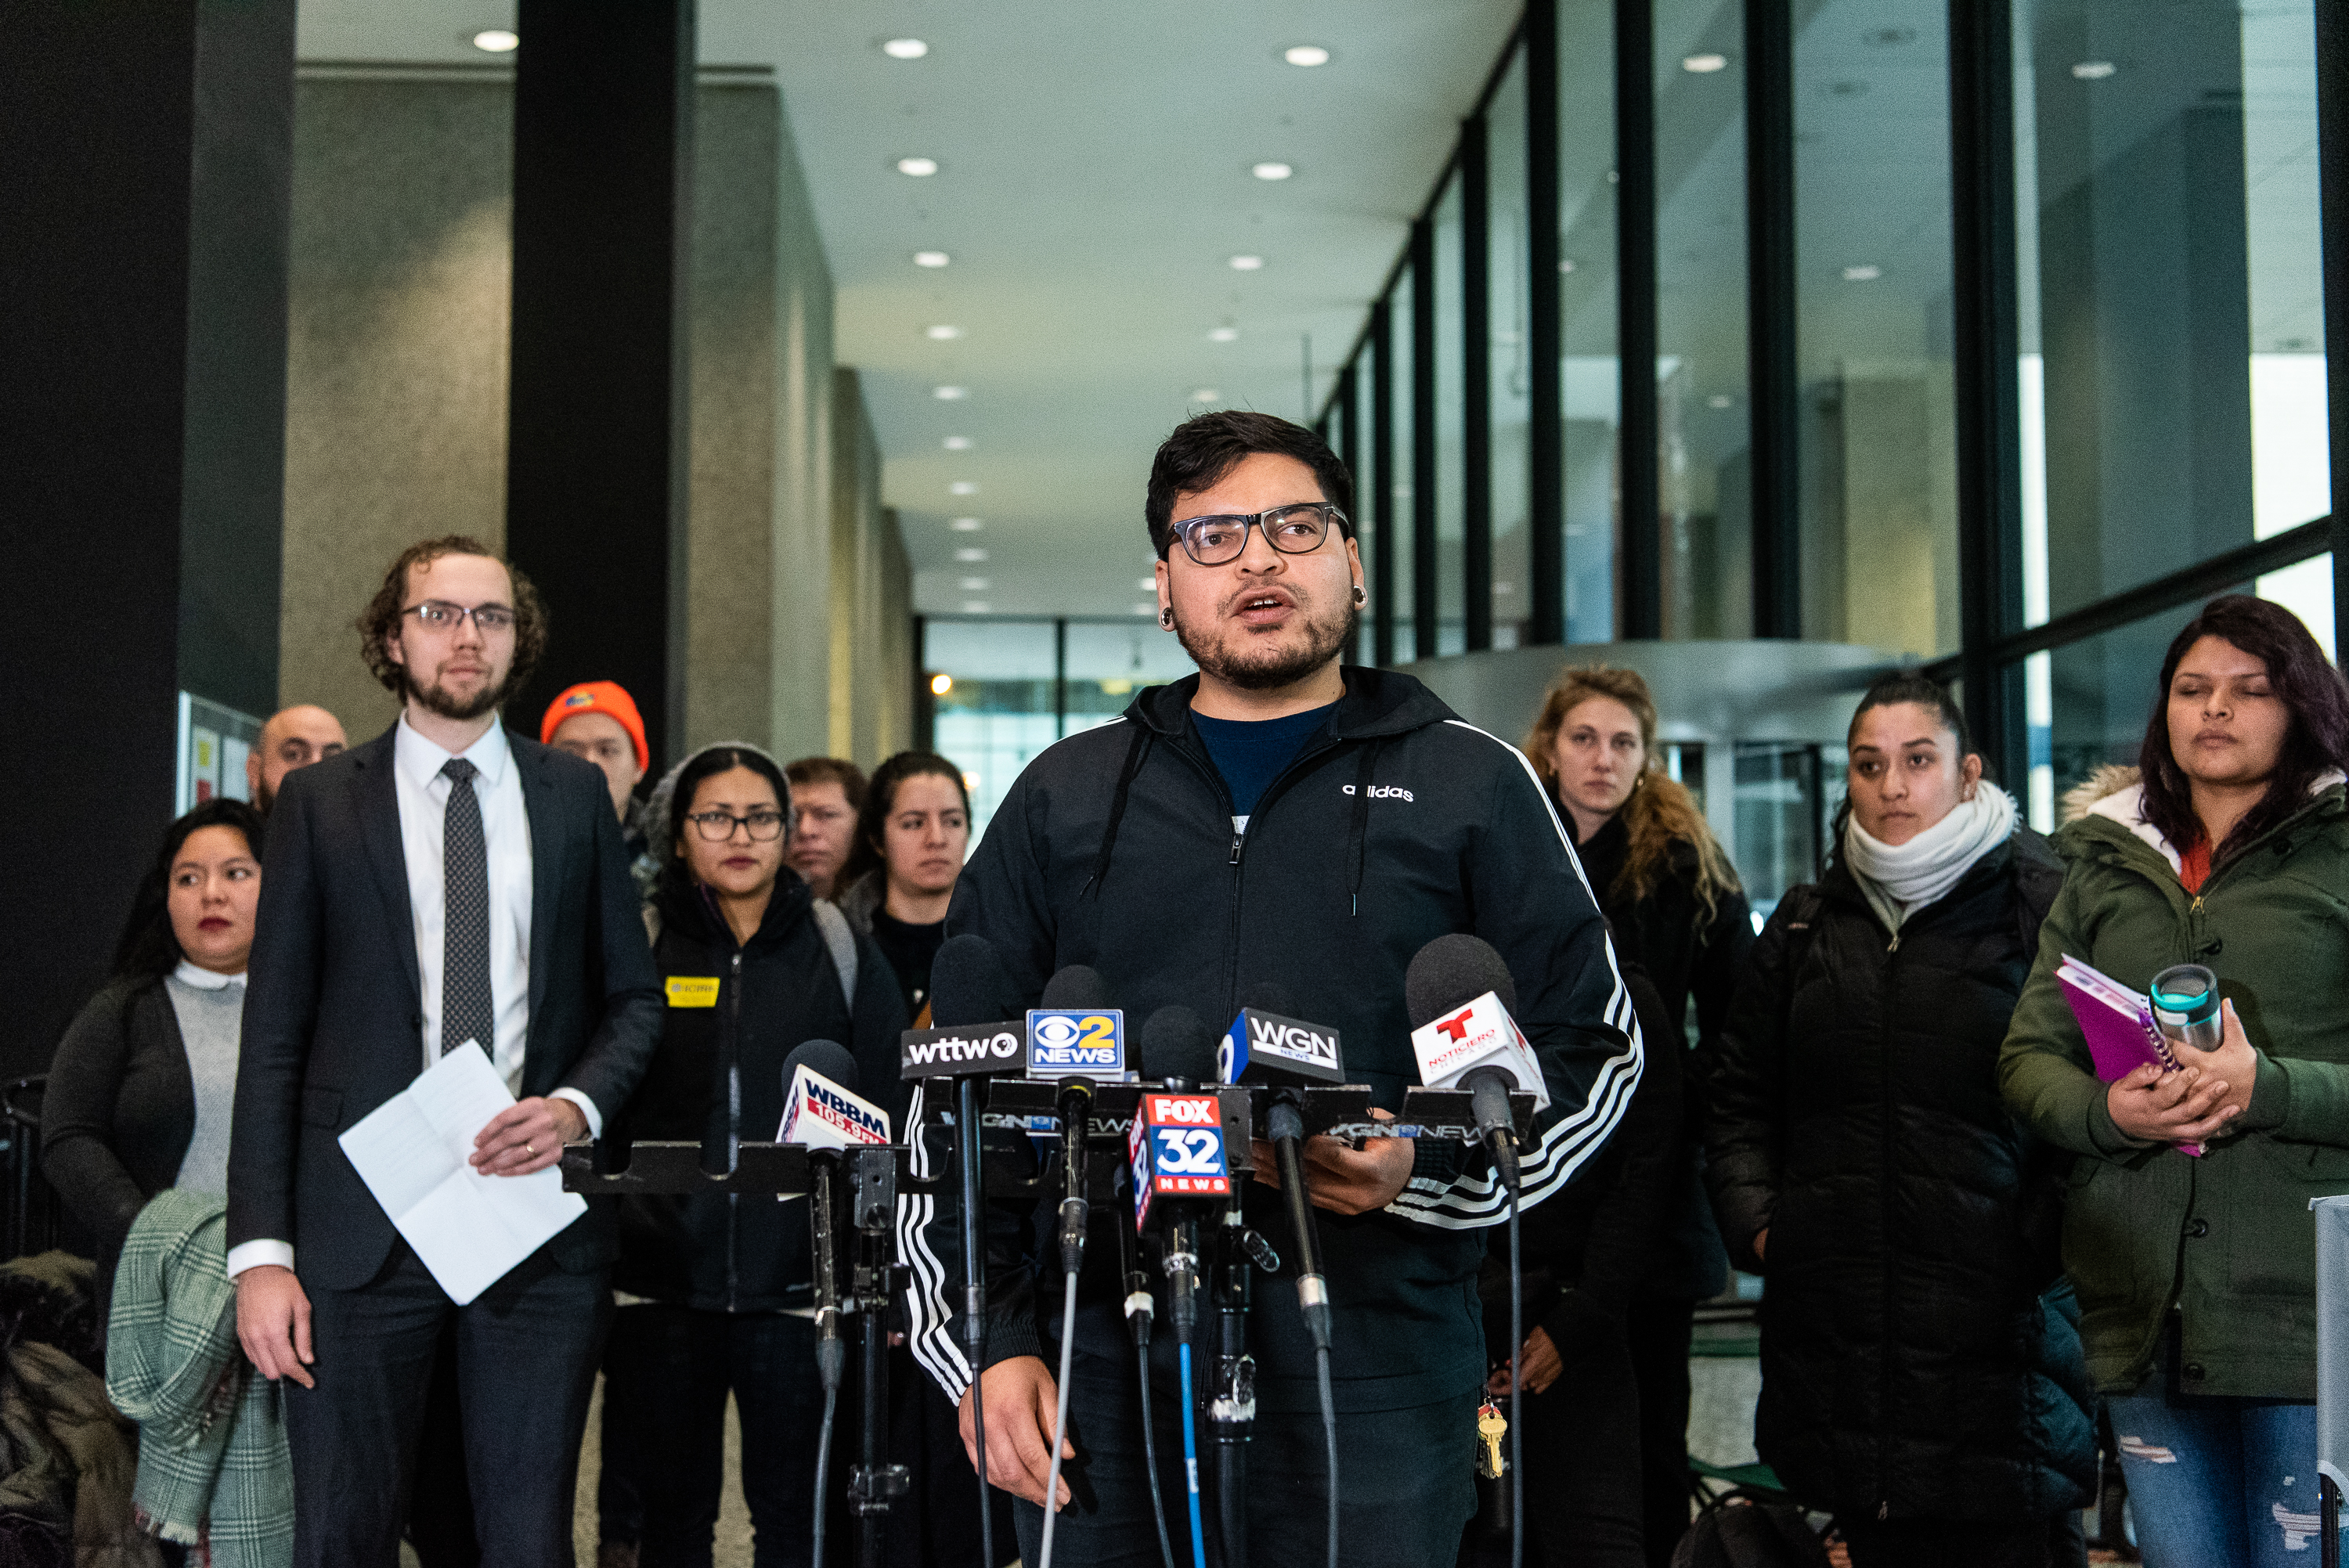 Miguel Lopez, speaks to members of the media about his younger brother Jesus Alberto Lopez Gutierrez, who faces deportation. Tuesday, Jan. 28, 2020, in Chicago.